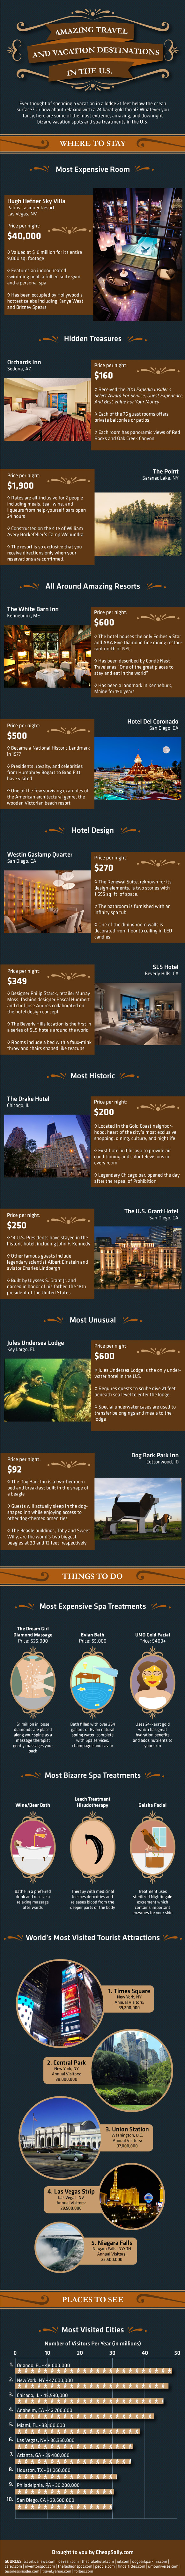 Amazing Travel and Vacation Destinations in the U.S.